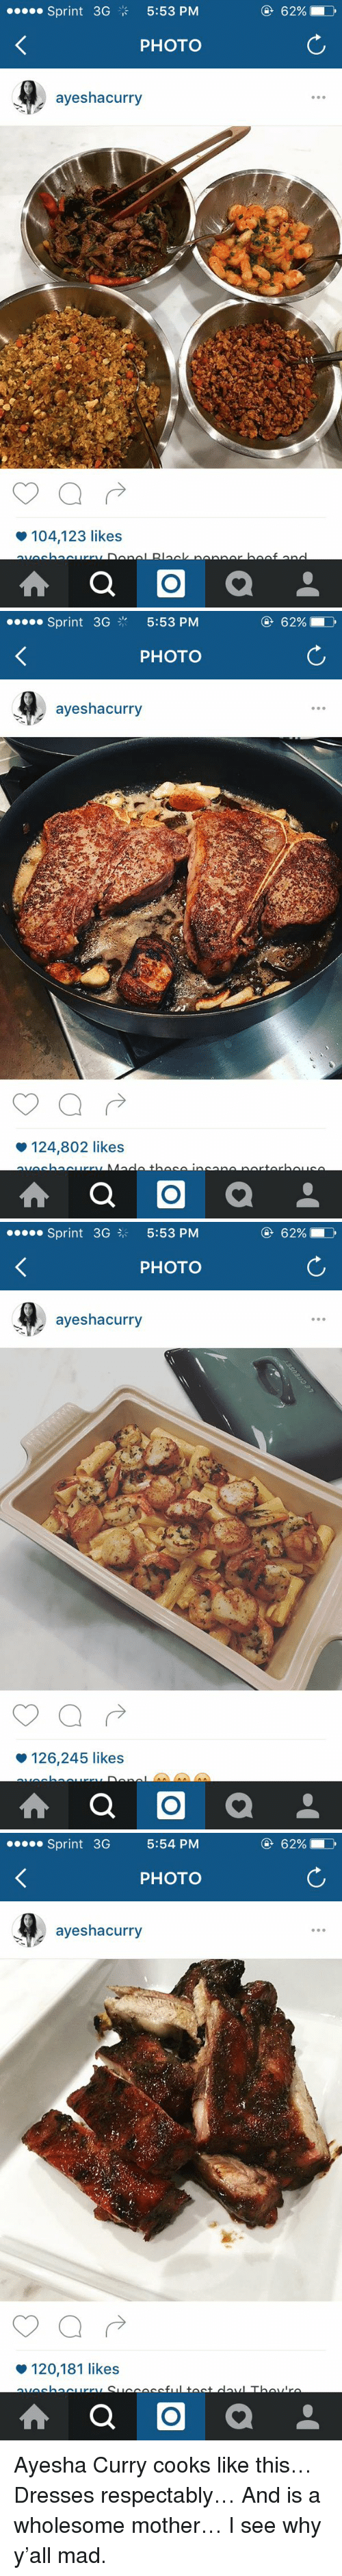 Ayesha Curry, Respect, and Xxx: Sprint 3G  5:53 PM  PHOTO  ayeshacurry  104,123 likes  A a O  a  62% D   Sprint 3G  5:53 PM  PHOTO  ayeshacurry  124,802 likes  A a O  a  62% D   Sprint 3G 3 5:53 PM  PHOTO  ayeshacurry  126,245 likes  A a O  a  62%   Sprint 3G  5:54 PM  PHOTO  ayeshacurry  120,181 likes  A a O  a Ayesha Curry cooks like this… Dresses respectably… And is a wholesome mother… I see why y'all mad.